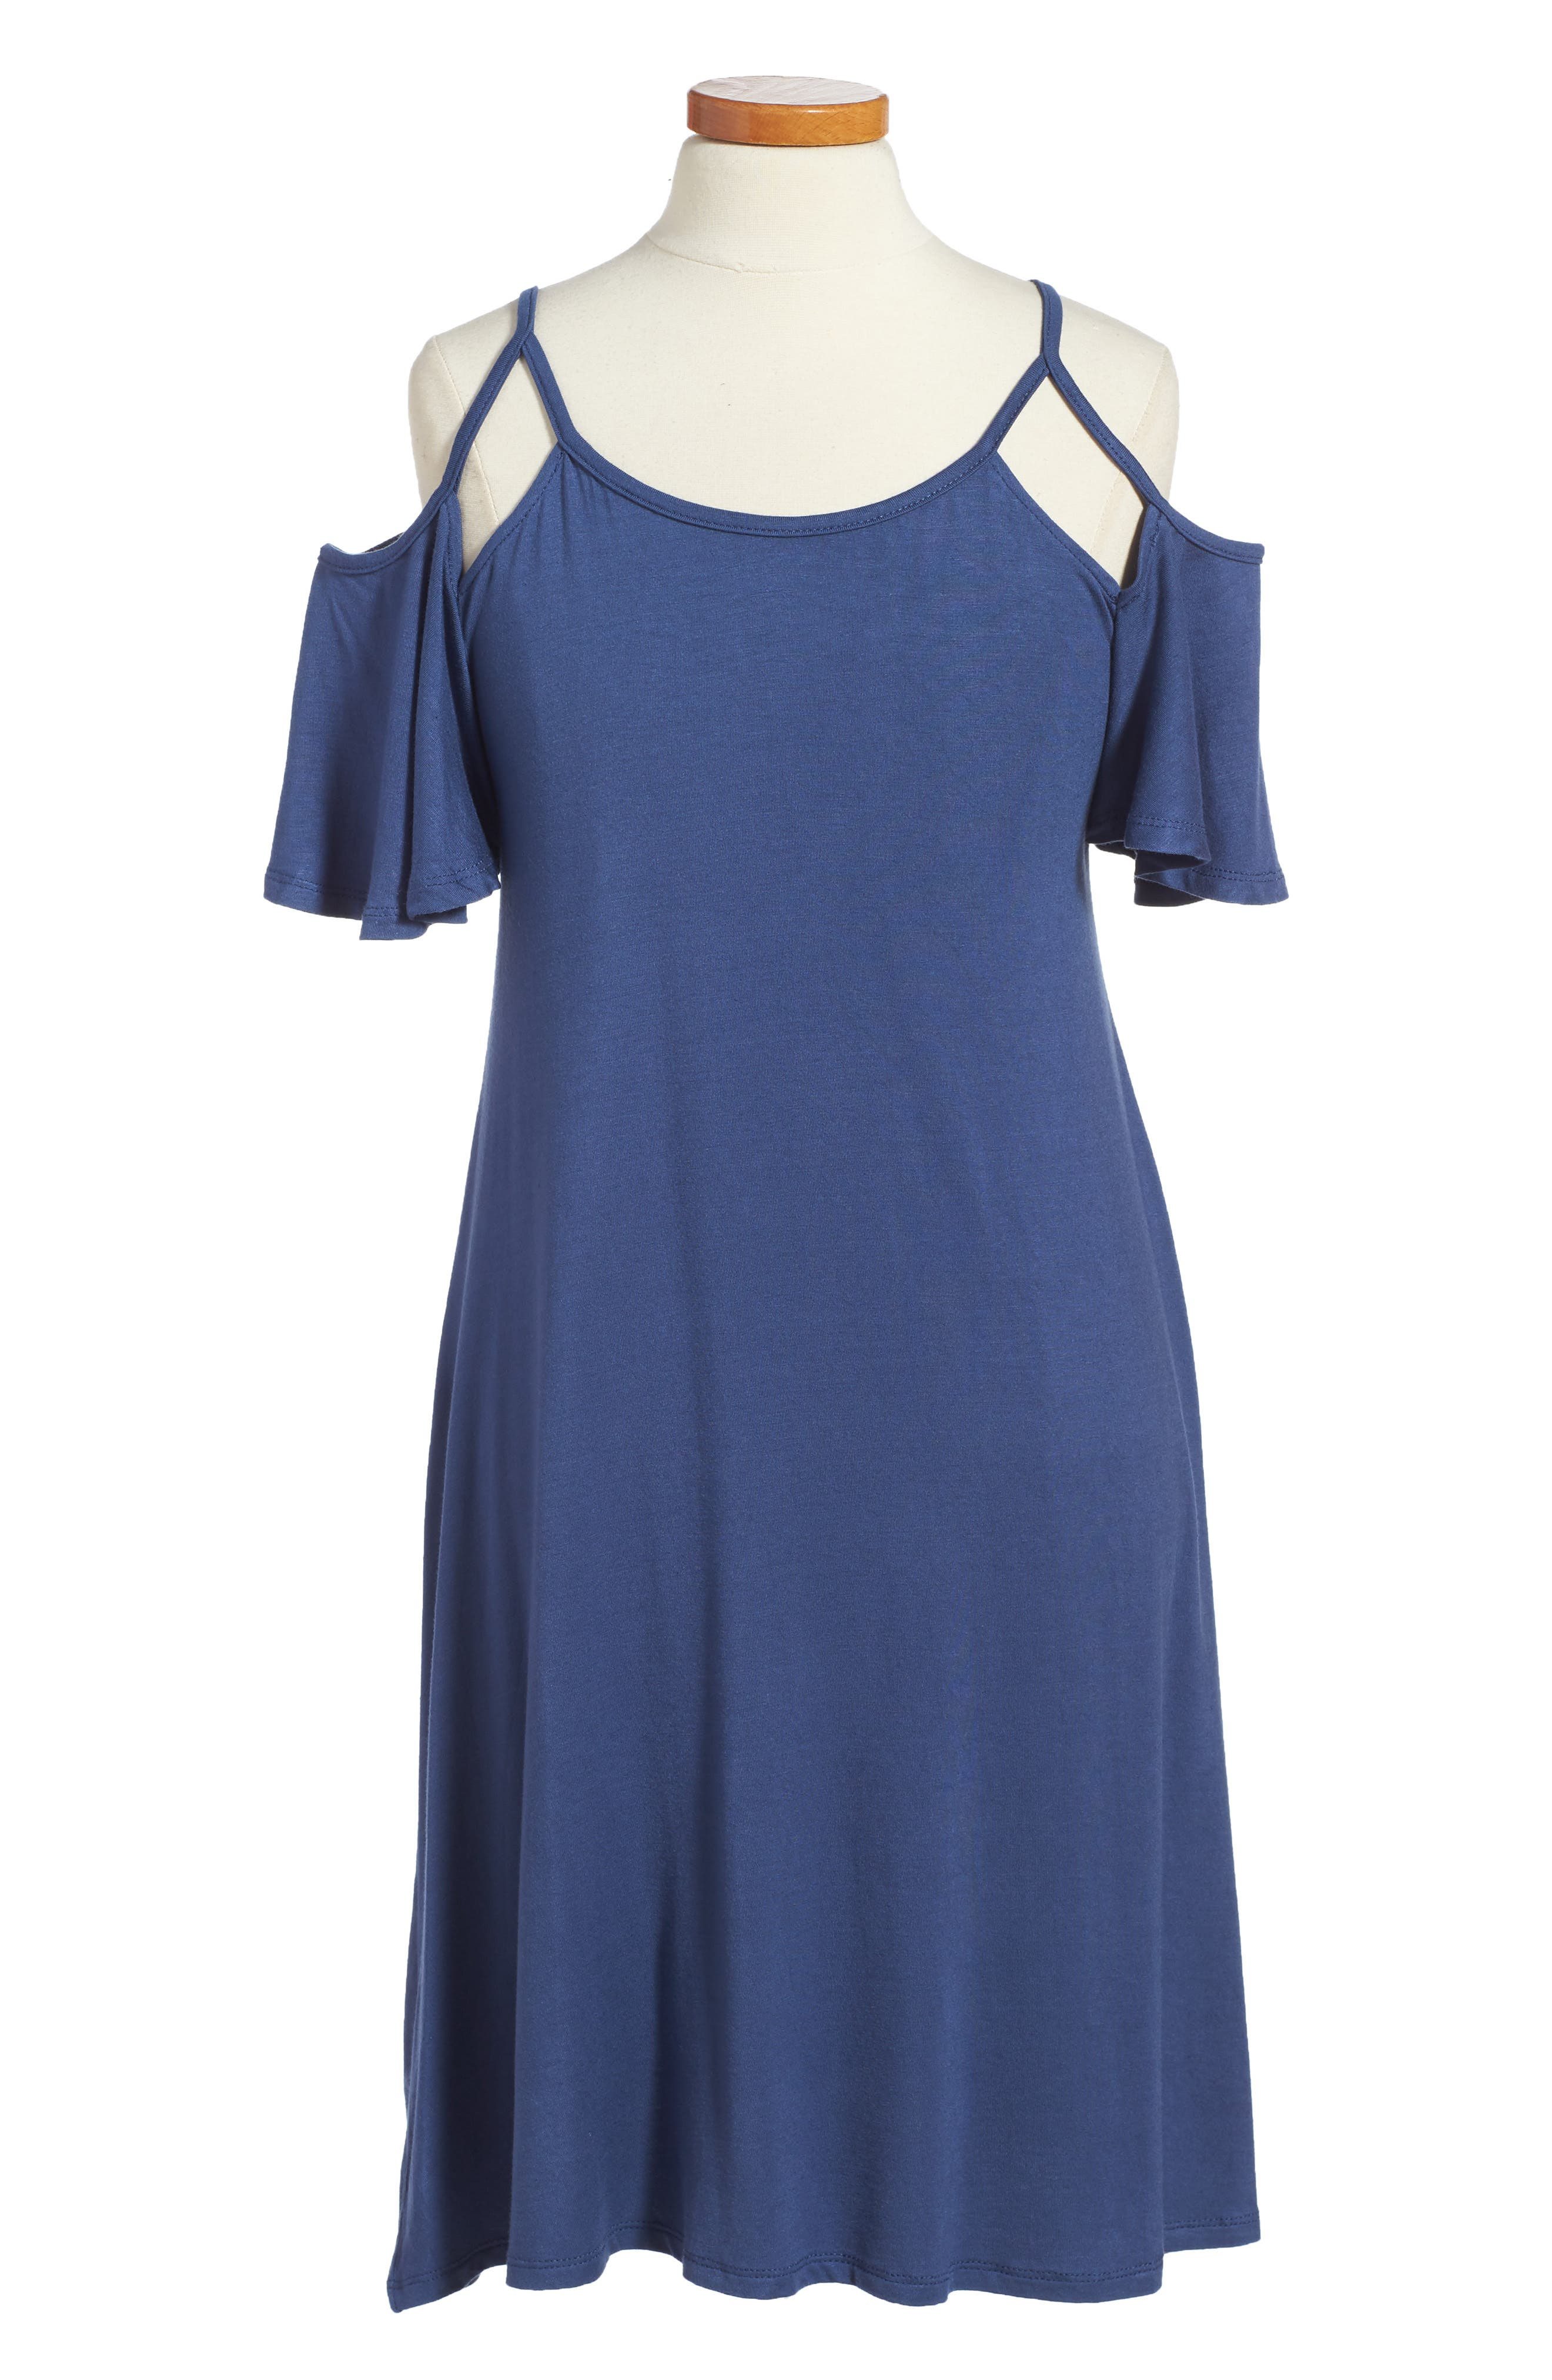 Penelope Tree Regine Cold Shoulder Dress (Big Girls)